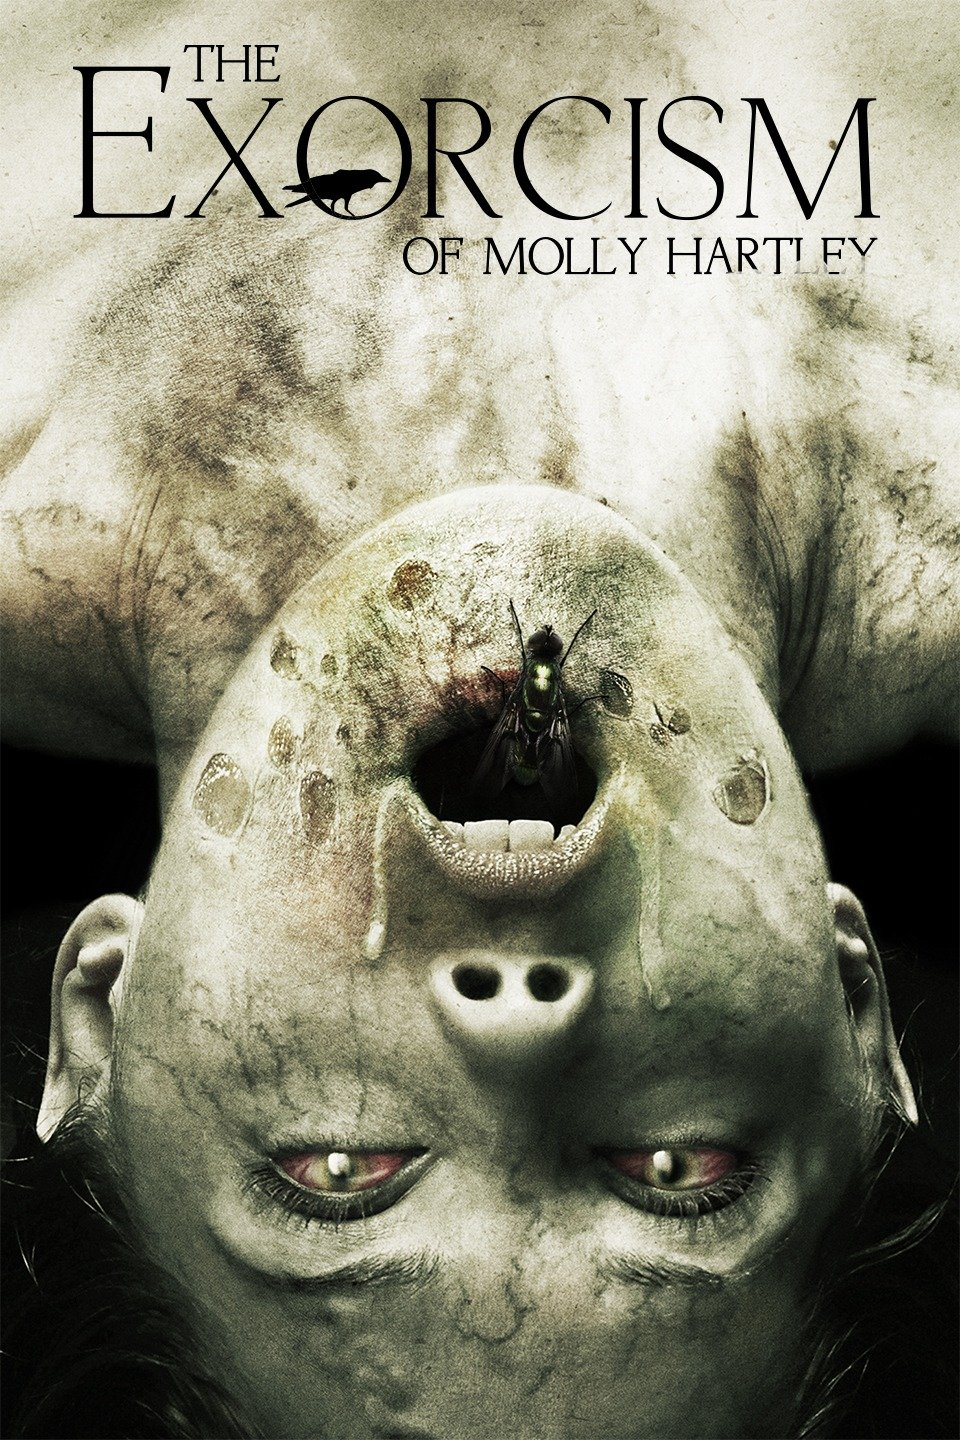 The Exorcism of Molly Hartley-The Exorcism of Molly Hartley